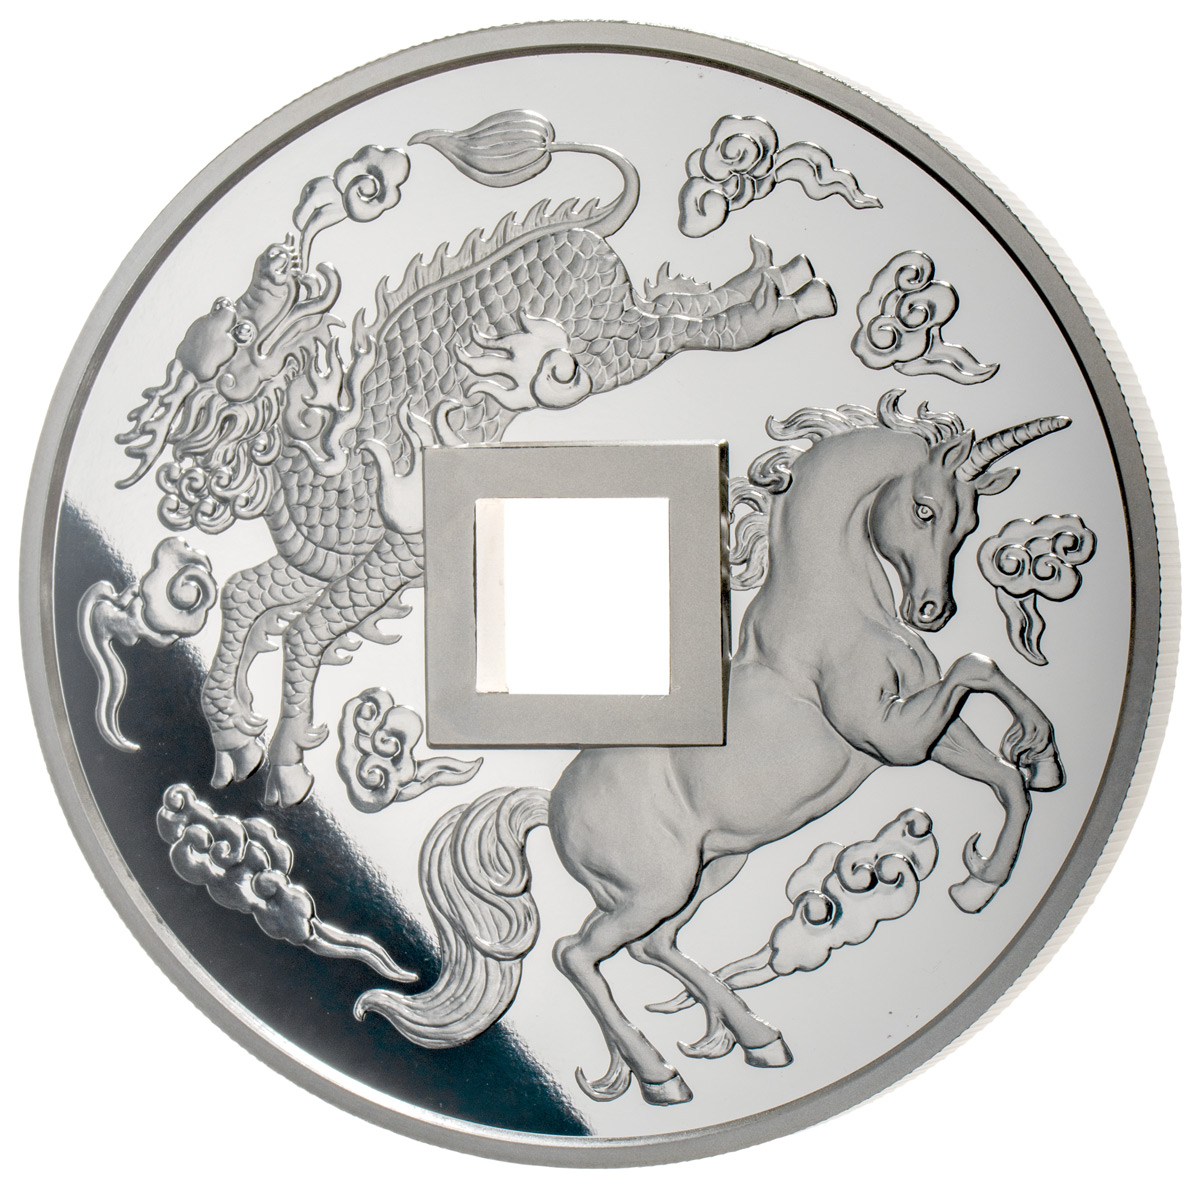 2019-(S) China Unicorn Vault Protector 25th Anniversary 5 oz Silver Proof Medal GEM Proof